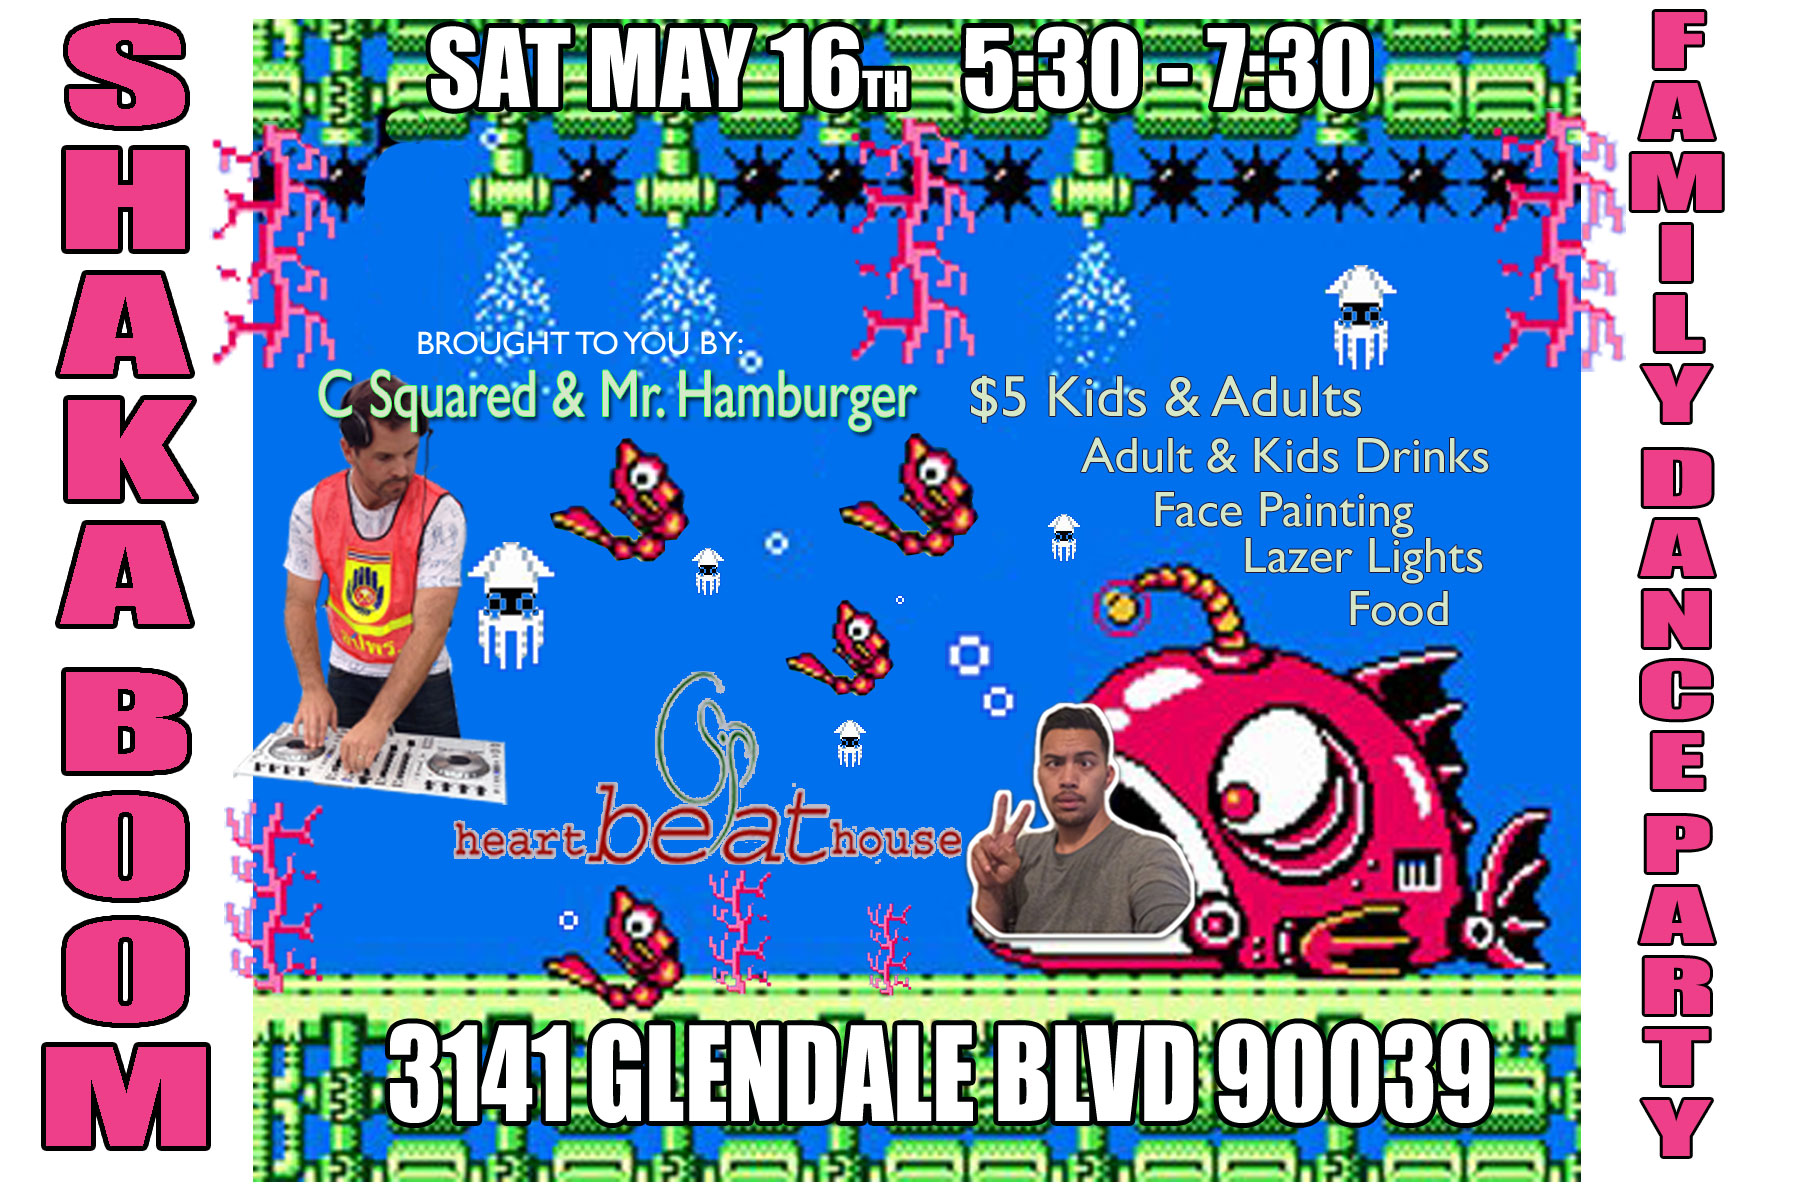 family dance party may 16